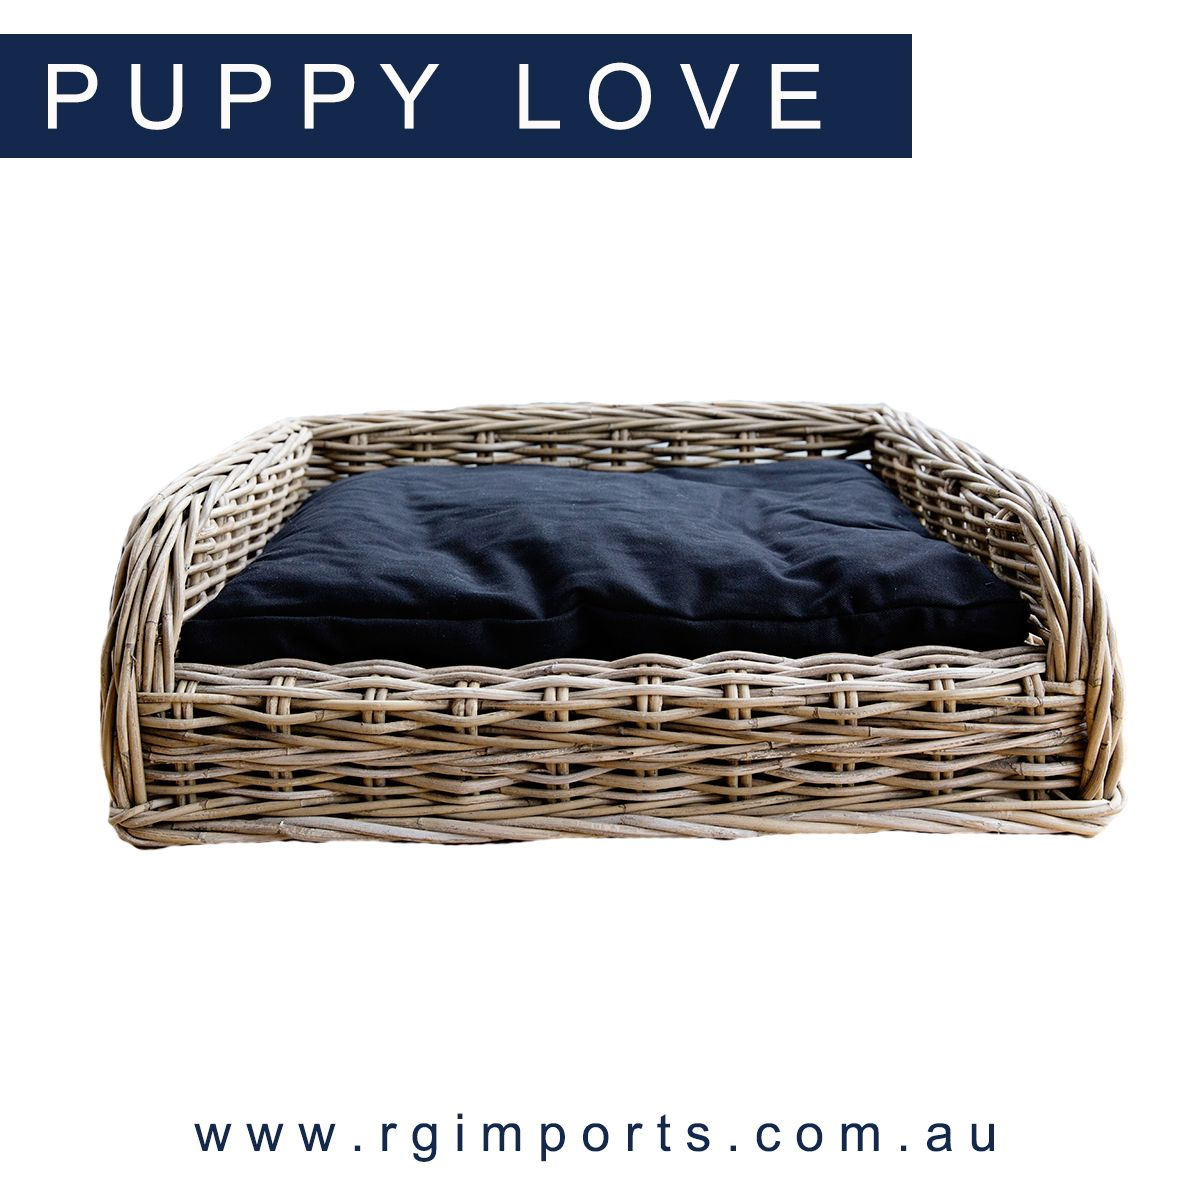 Make your puppy's day with our Vintage Rattan Dog Bed that